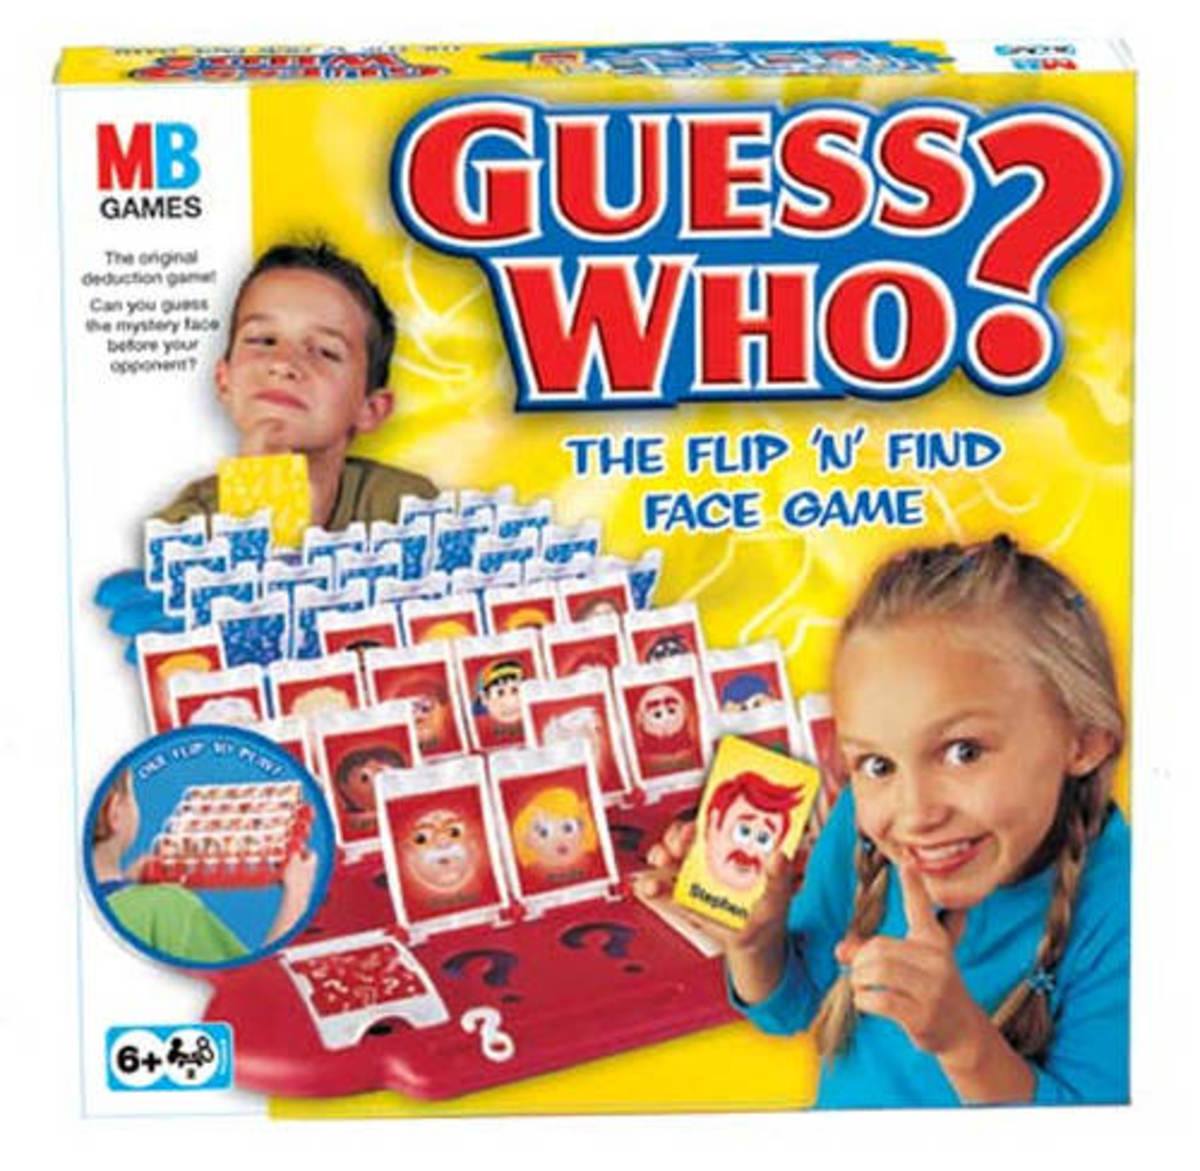 Guess who, the classic stereotypical profiling board game.